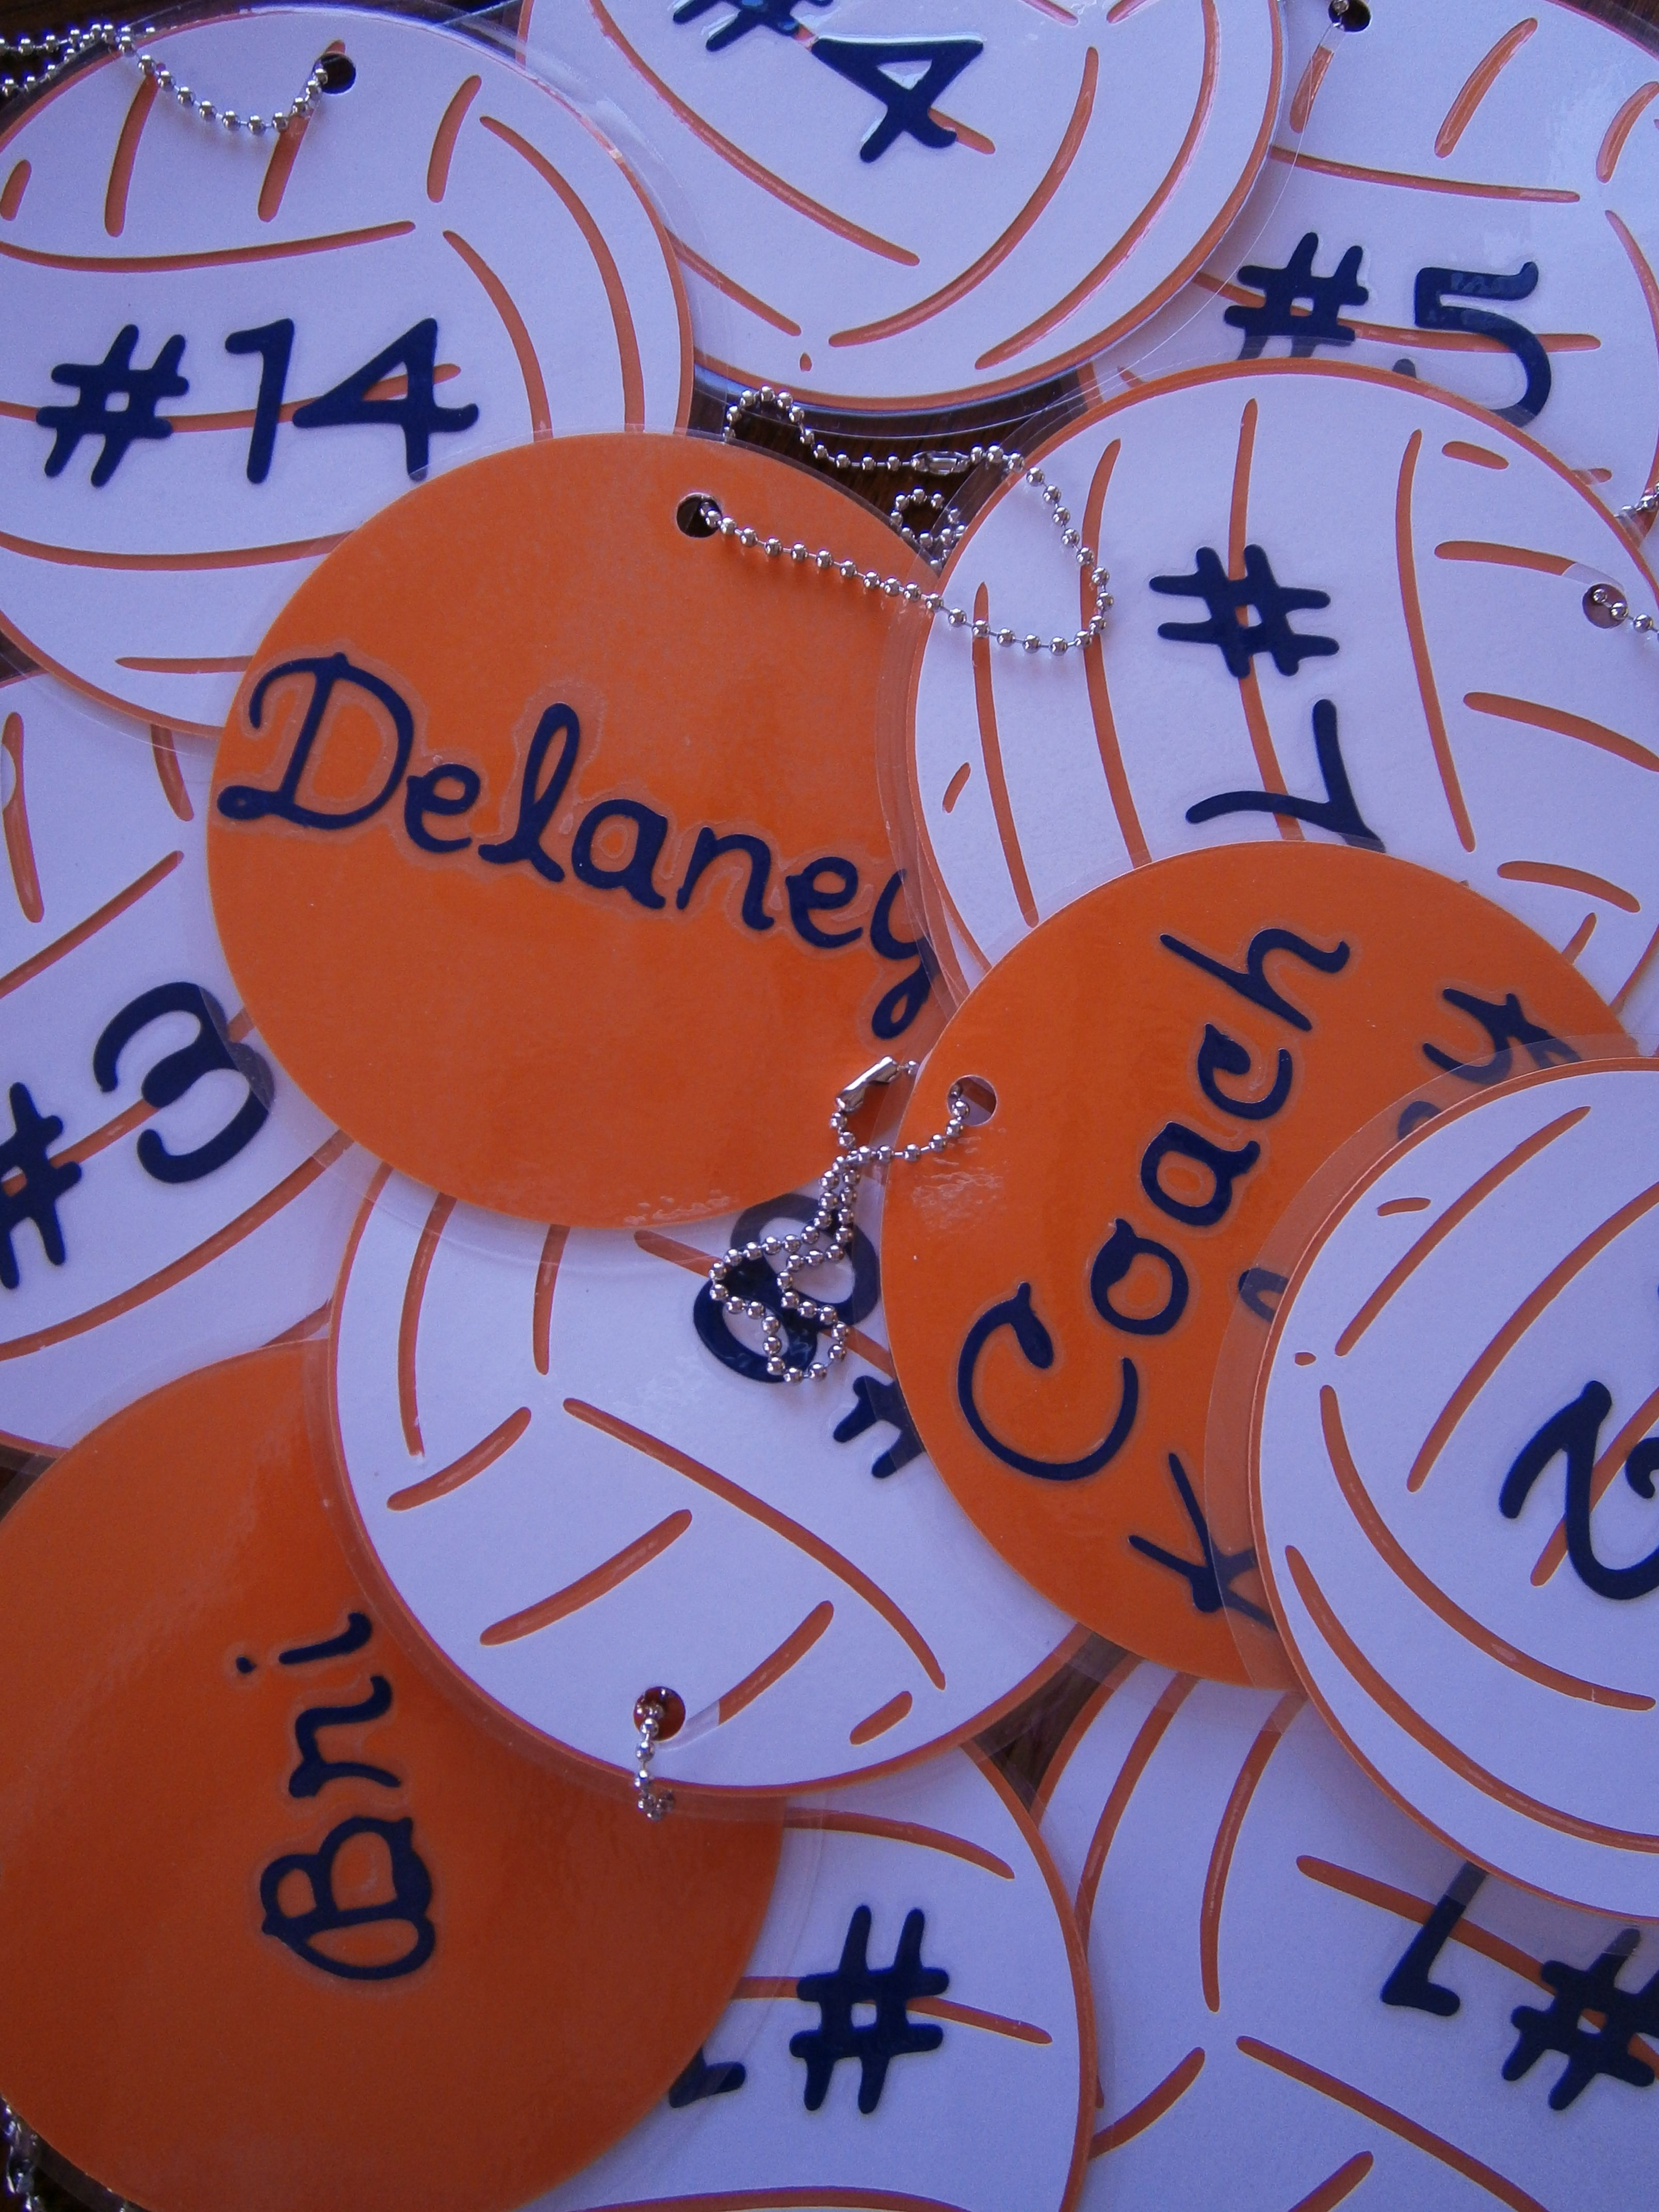 Bag Tags For The Volleyball Team Volleyball Bag Tags Volleyball Gifts Volleyball Team Gifts